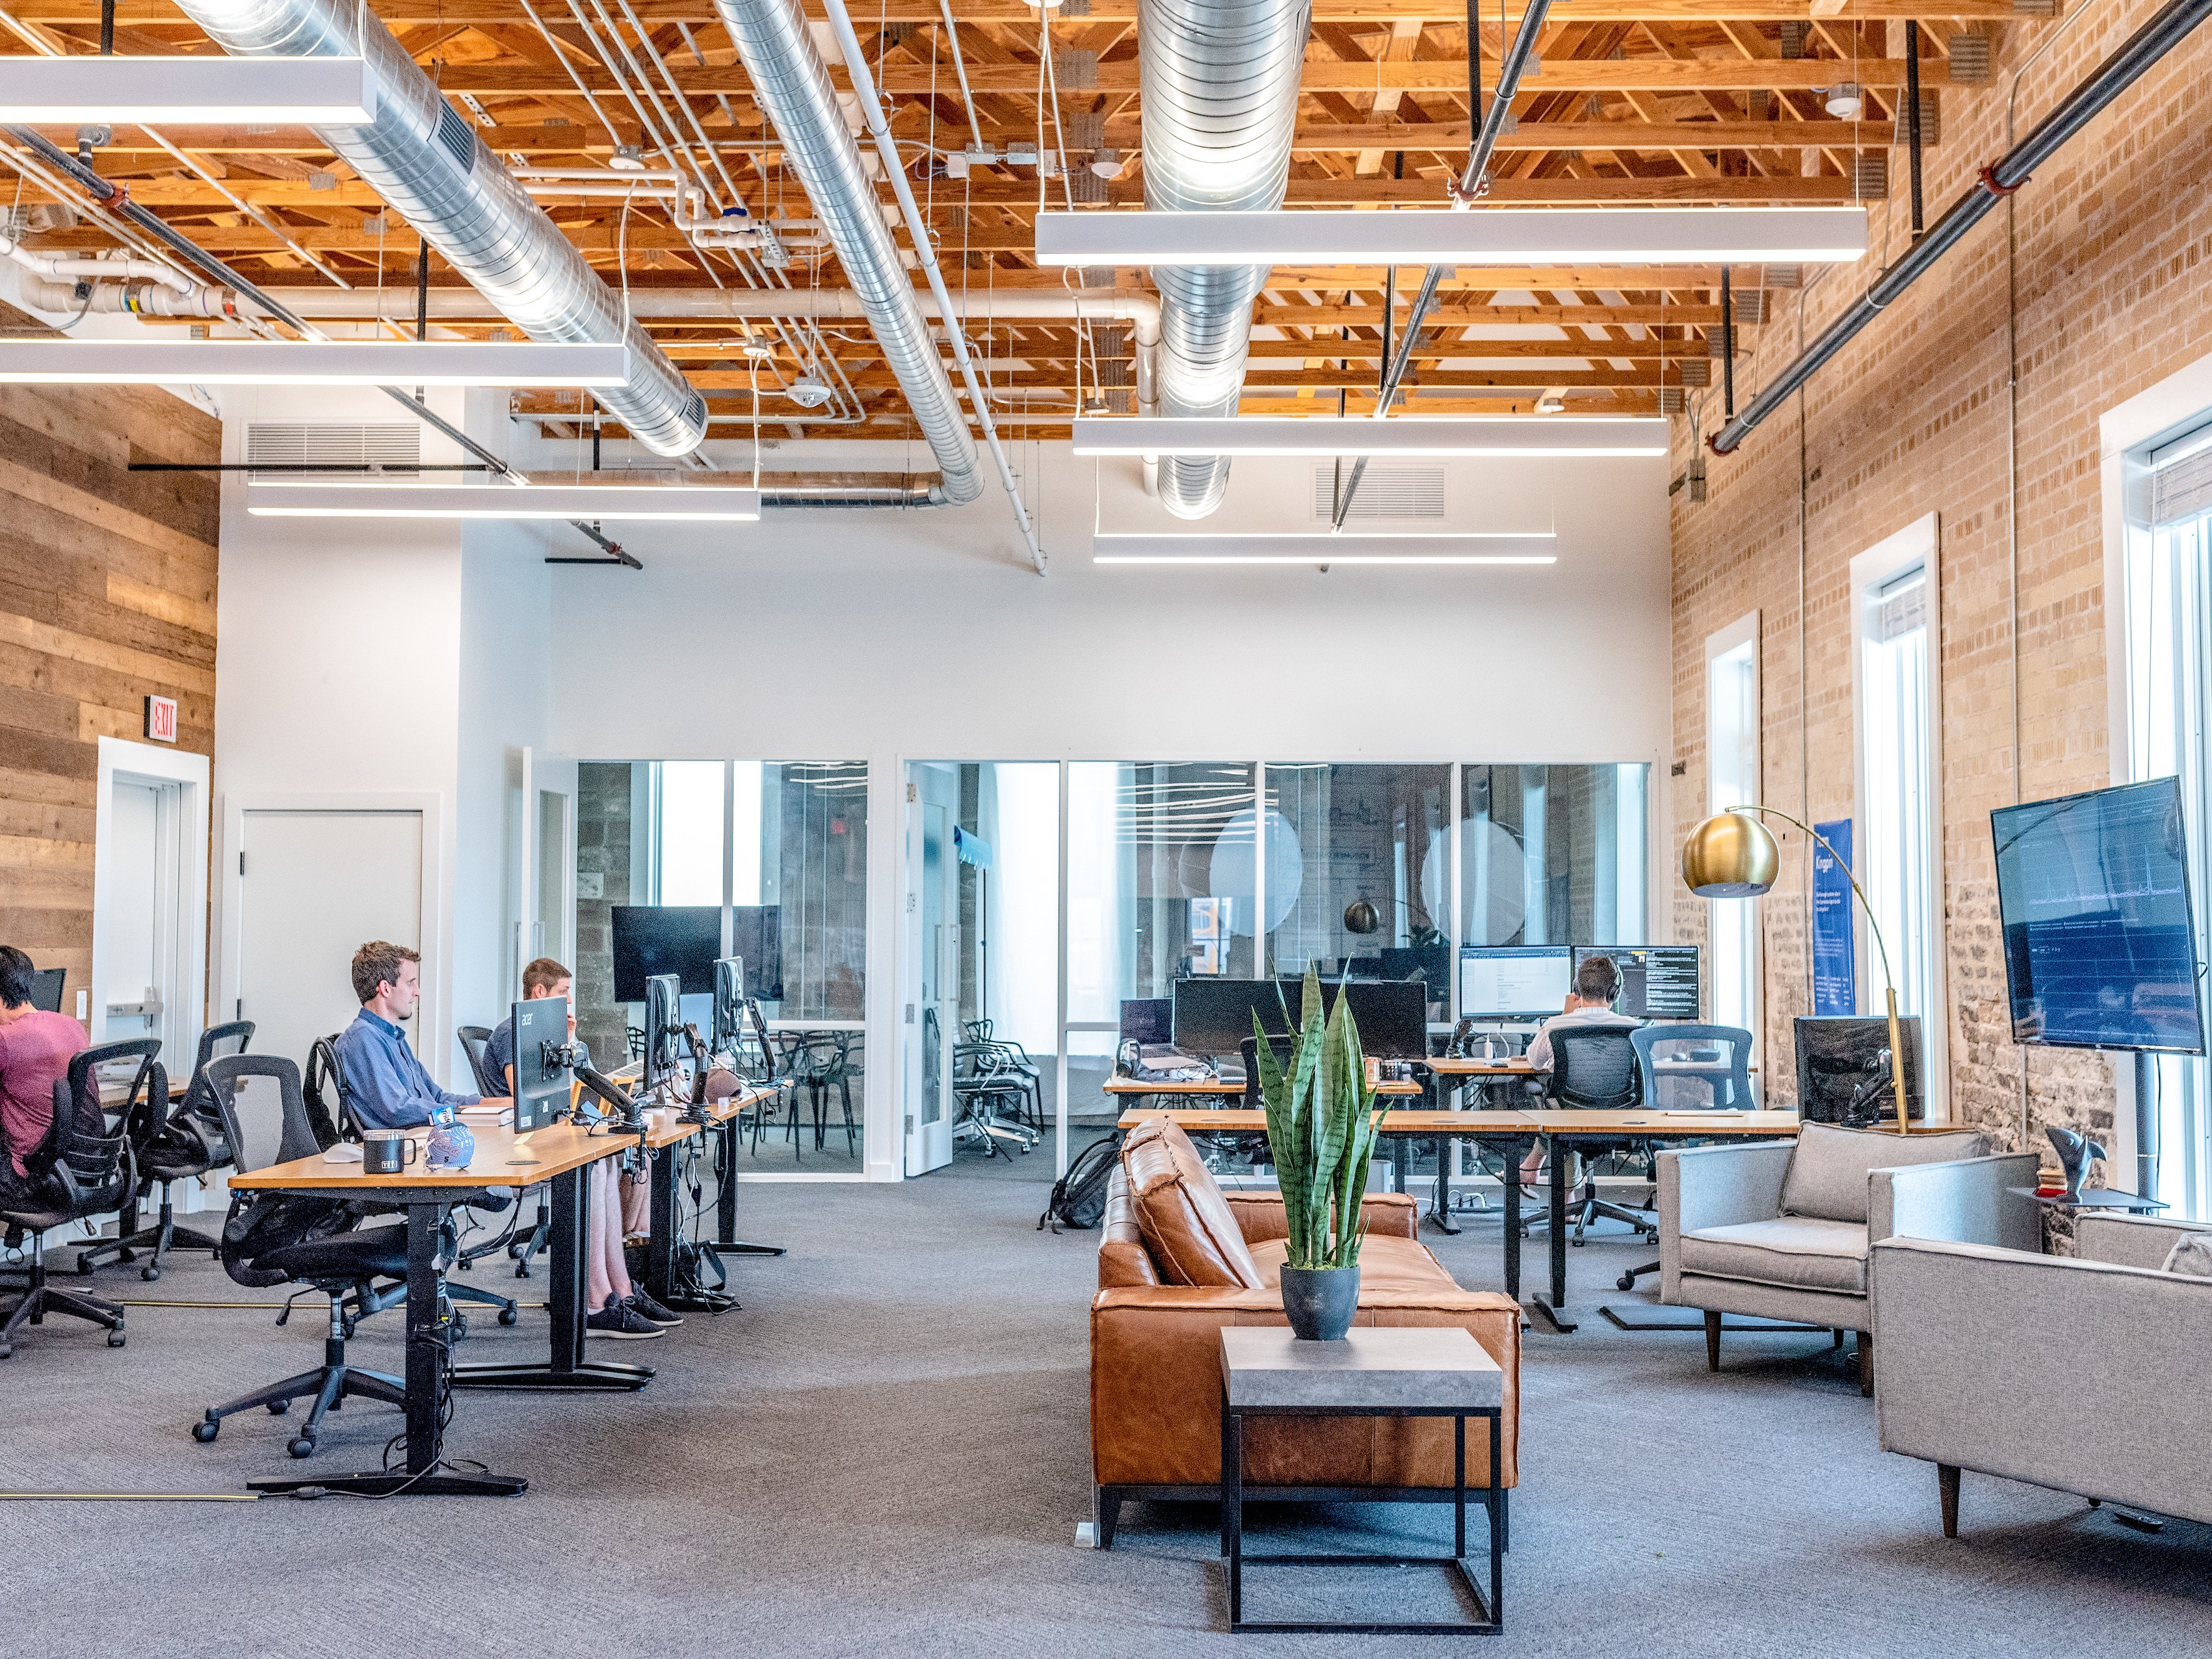 Coworking space with couches and plants